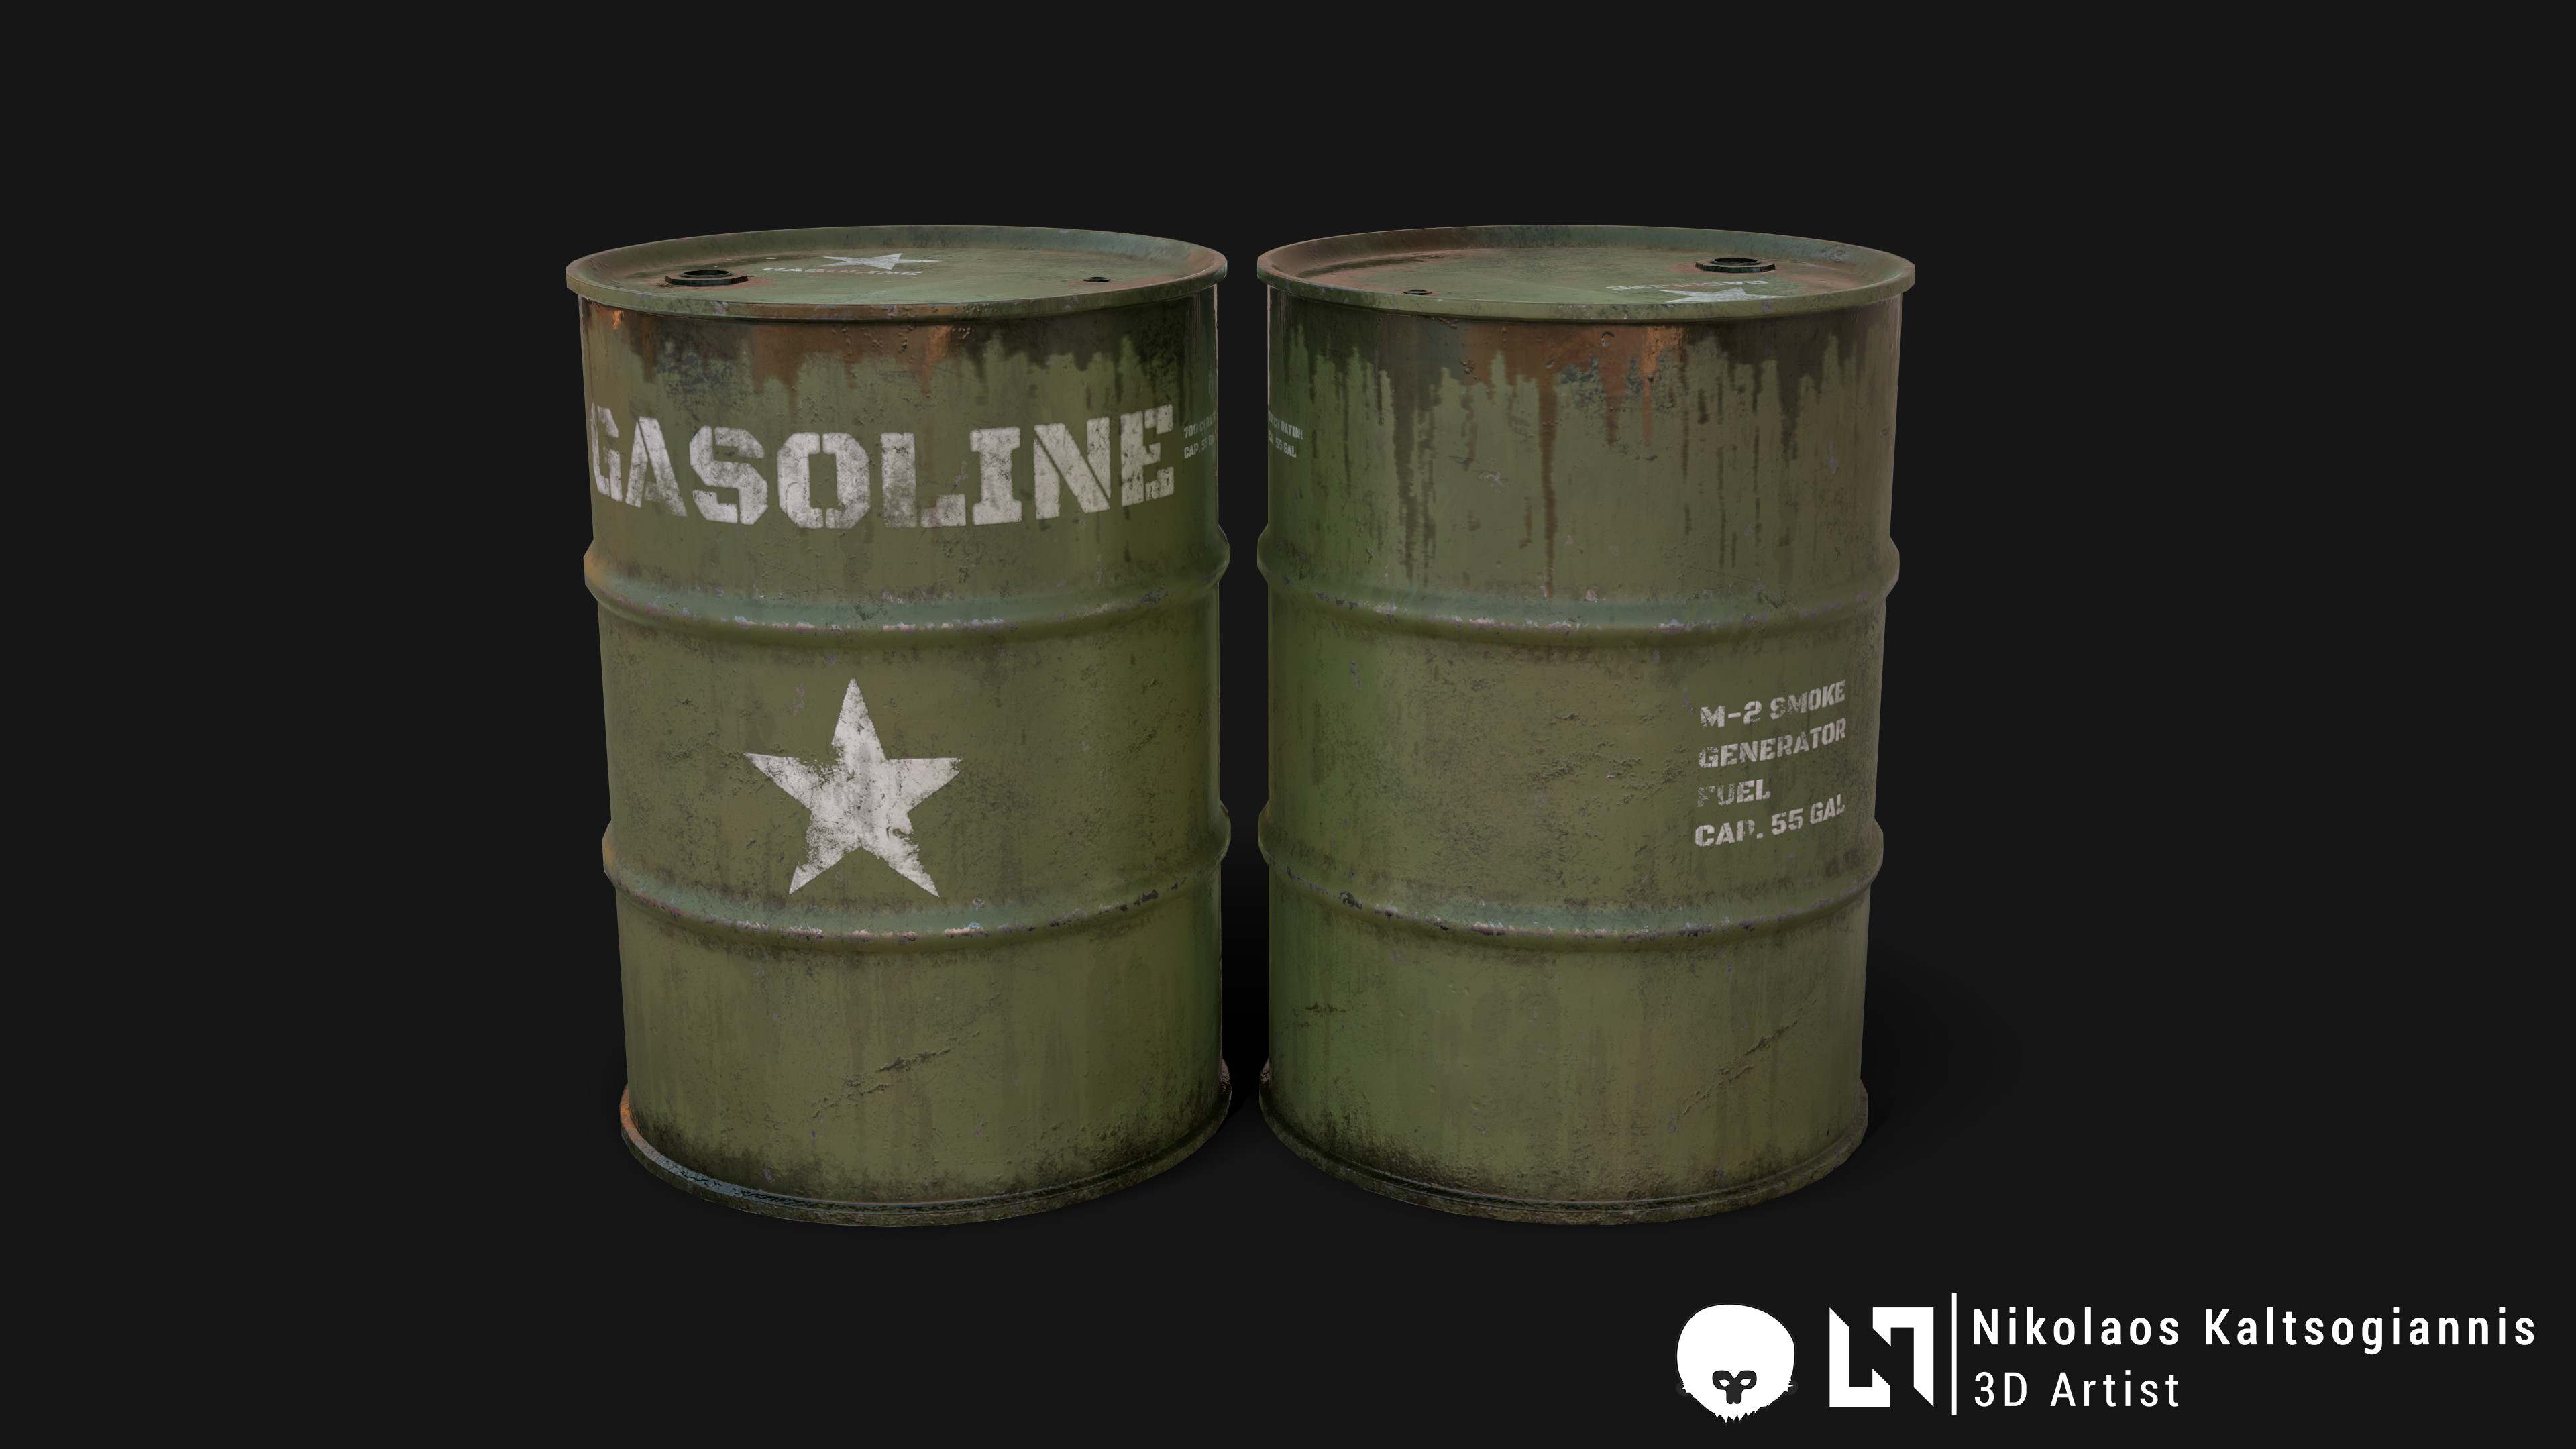 US Army Gasoline Steel Barrel.